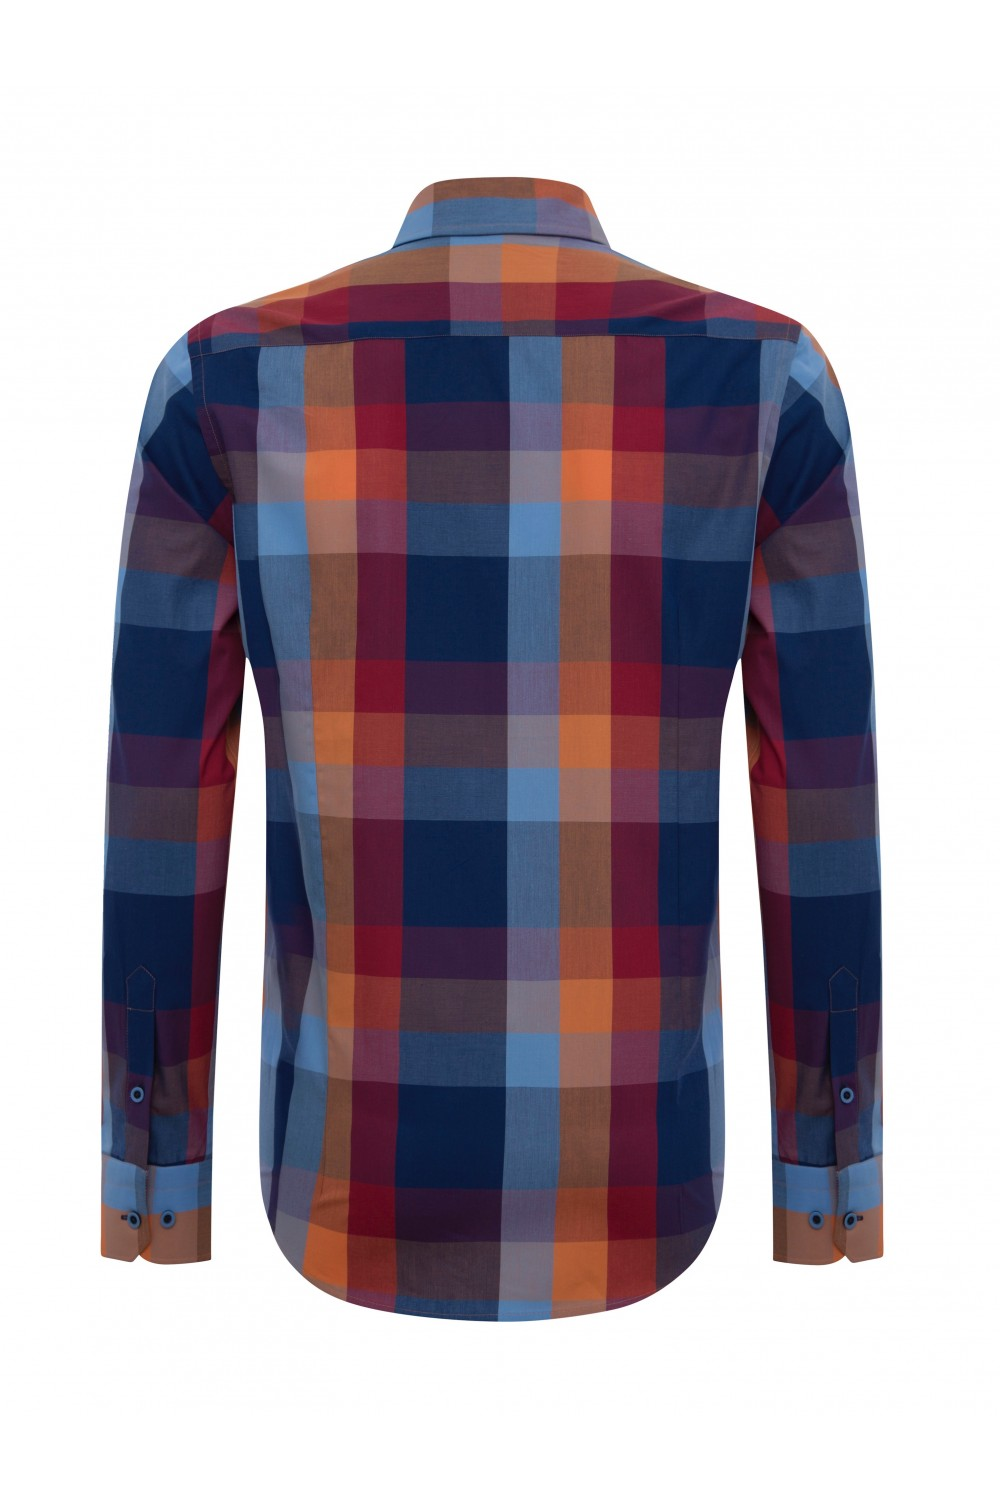 Men Shirt mit Kariert Kentkragen ROT